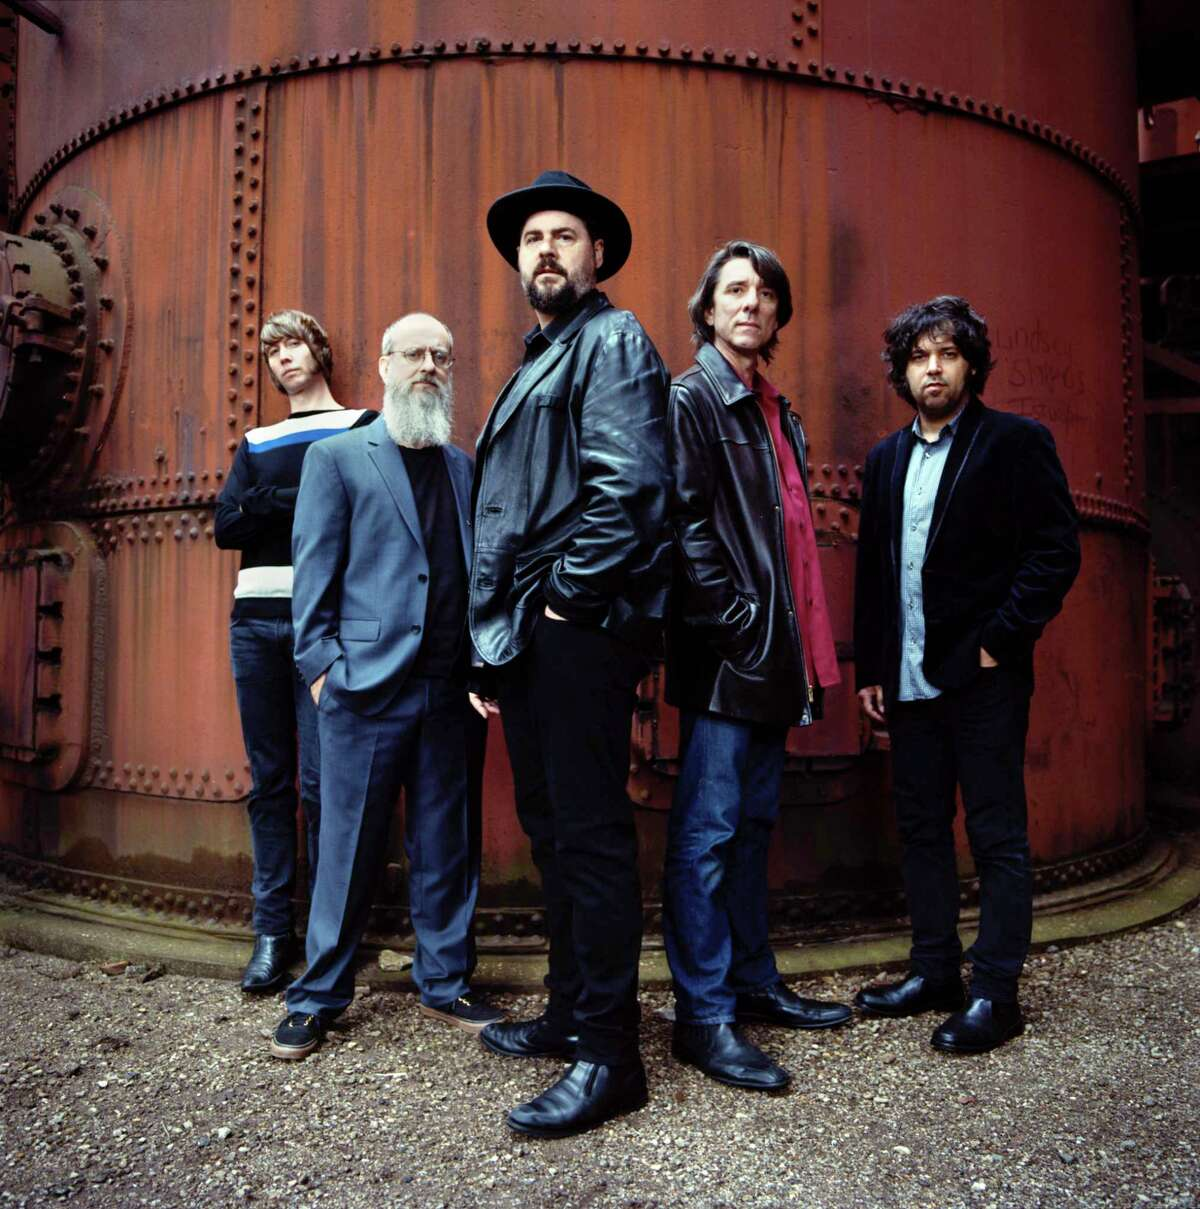 Drive-By Truckers: Politics - or at least class-consiousness - has always been part of country-rock band Drive-By Truckers' music, even on the wise-ass Southern gothic debut